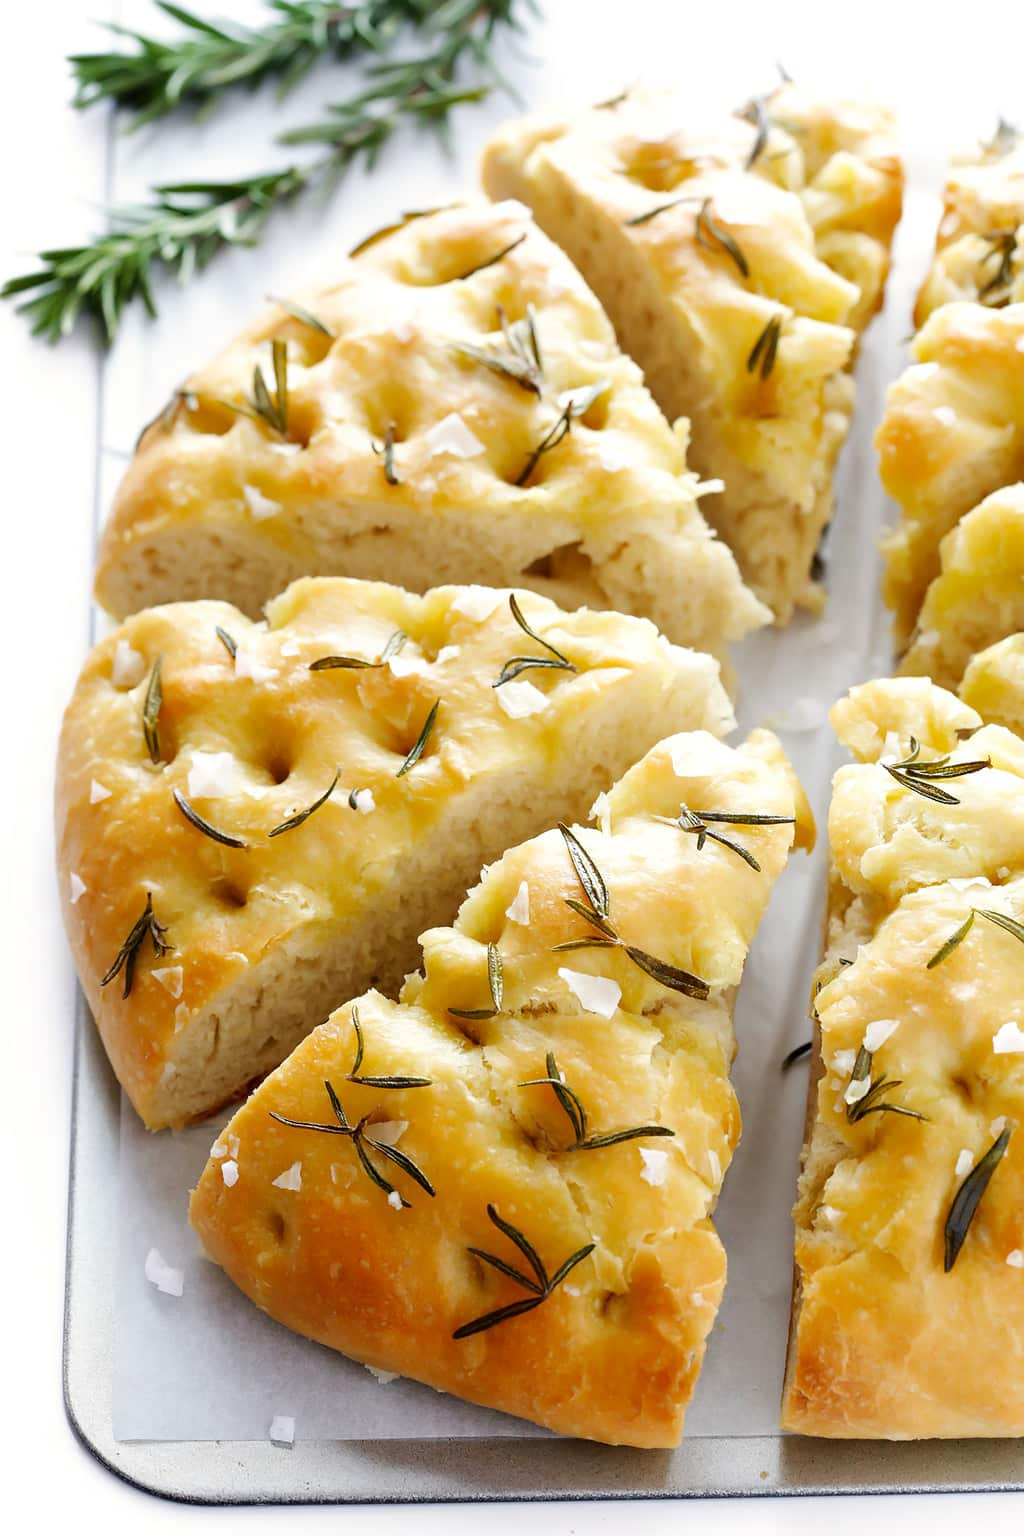 Rosemary Focaccia Bread by Gimme Some Oven